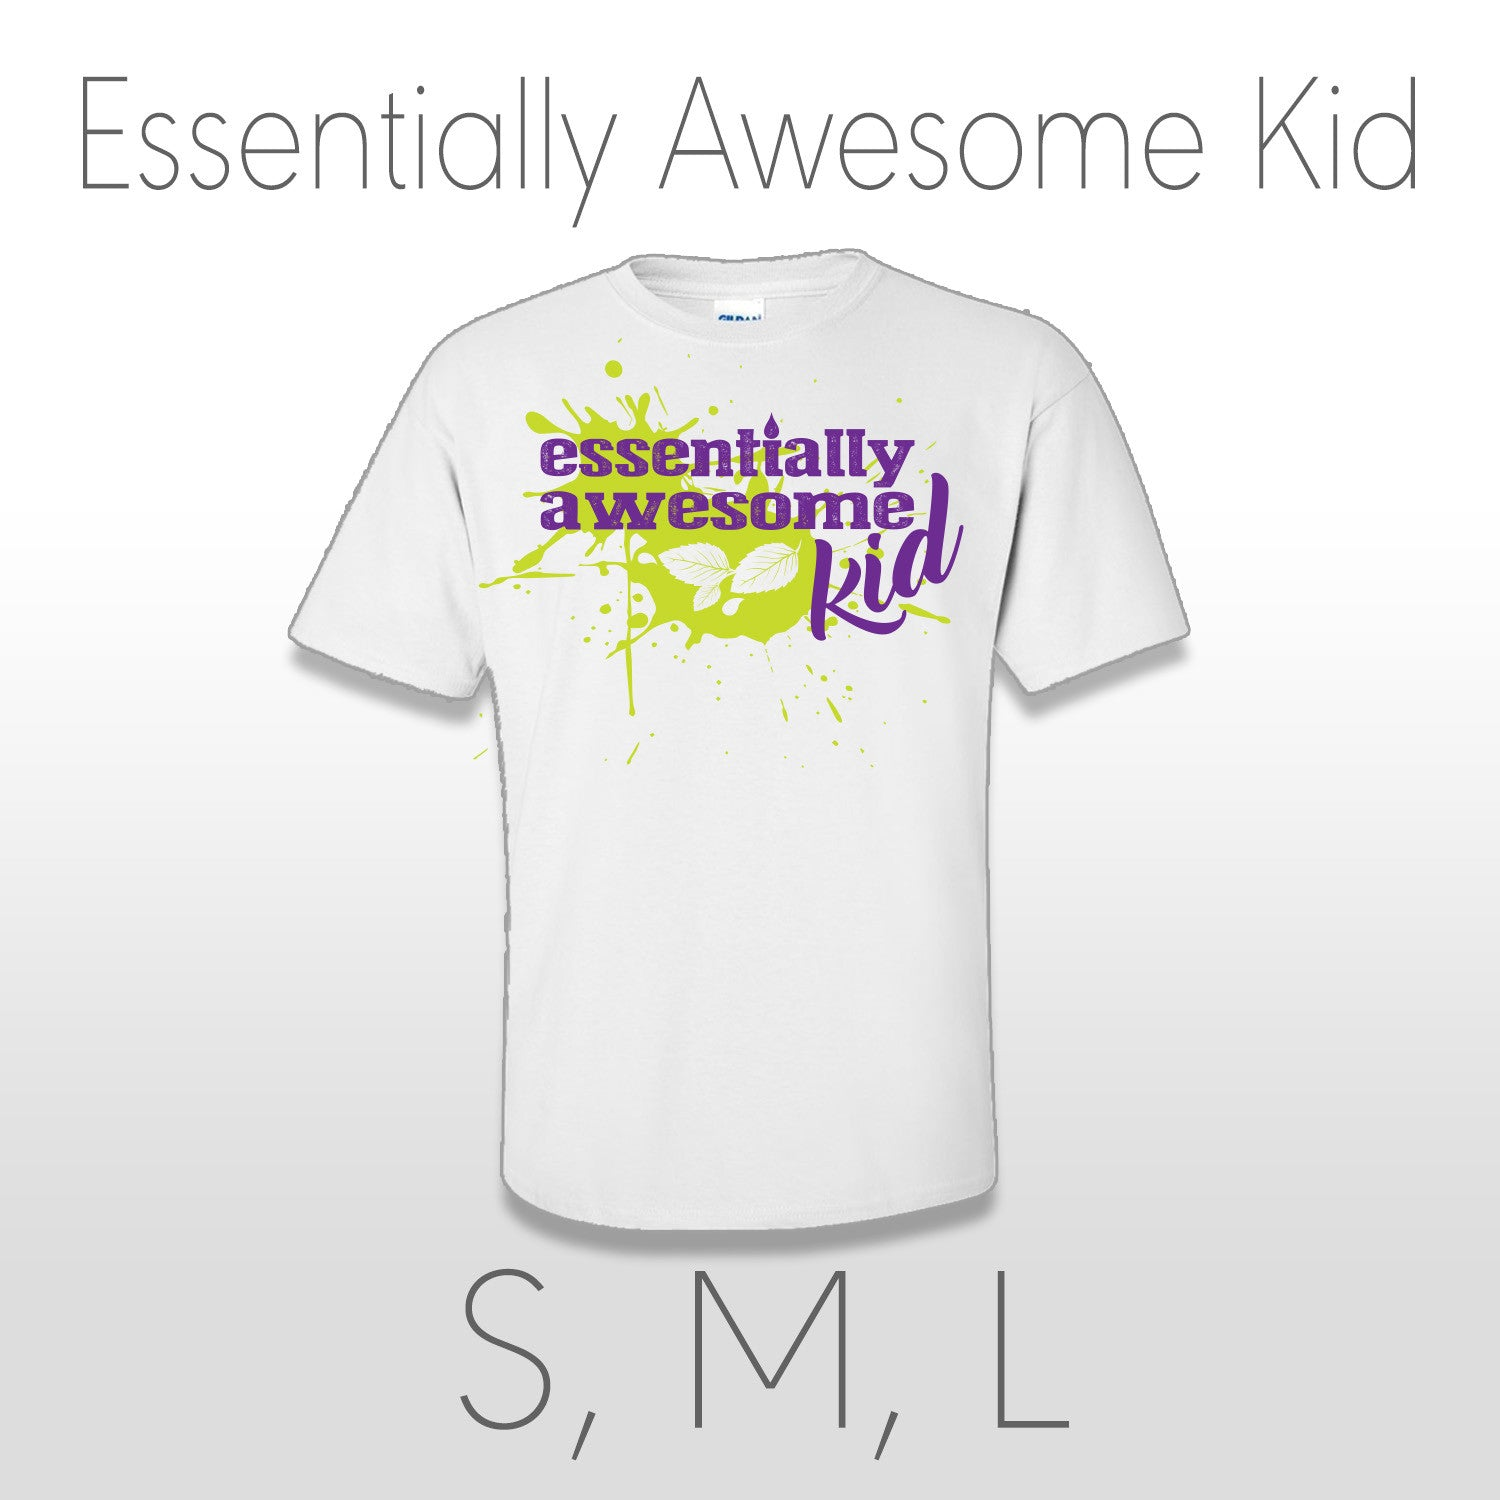 Essentially Awesome Kid Tee Shirt